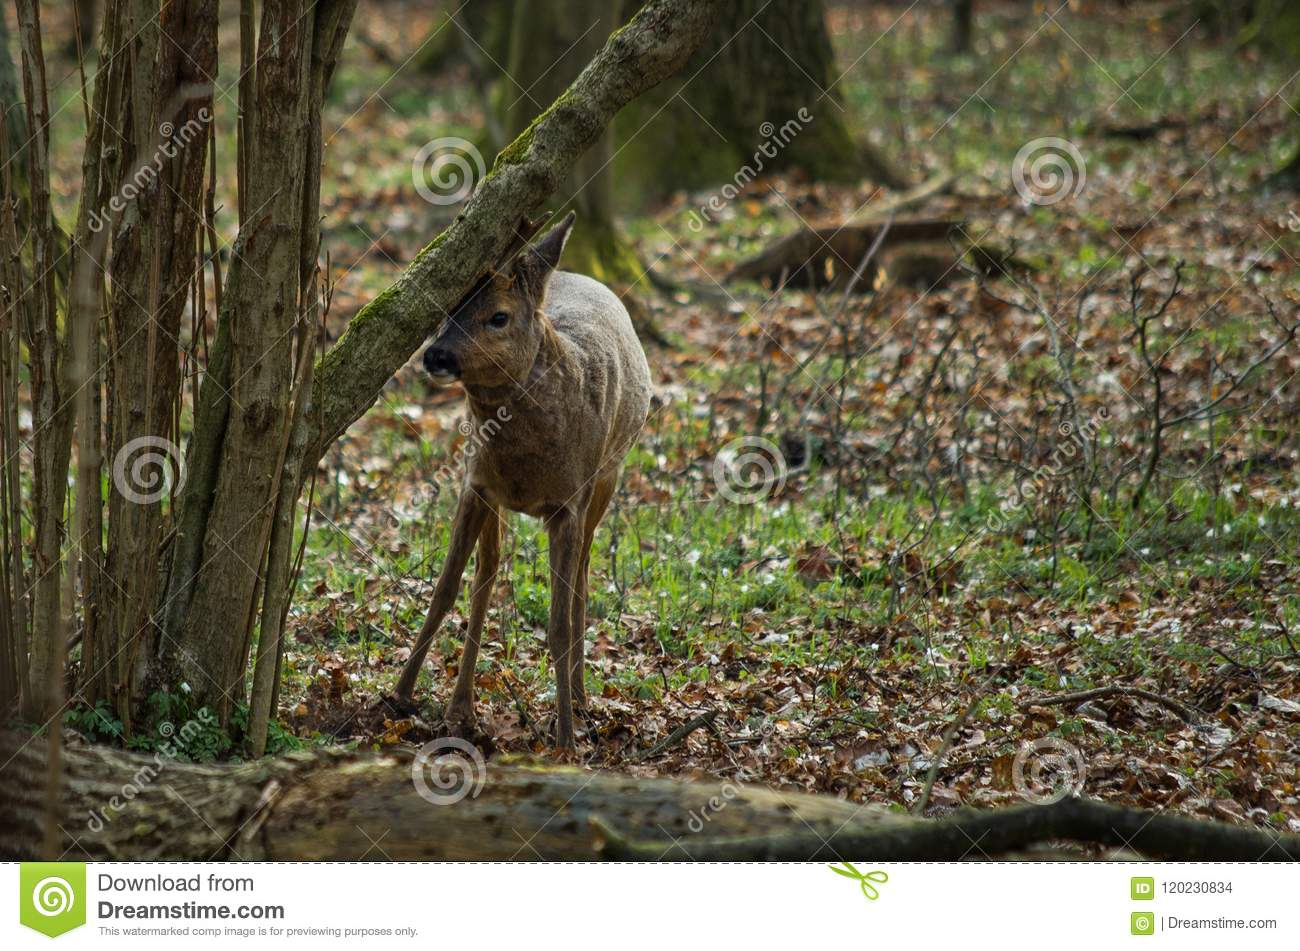 Roe deer in the forest.